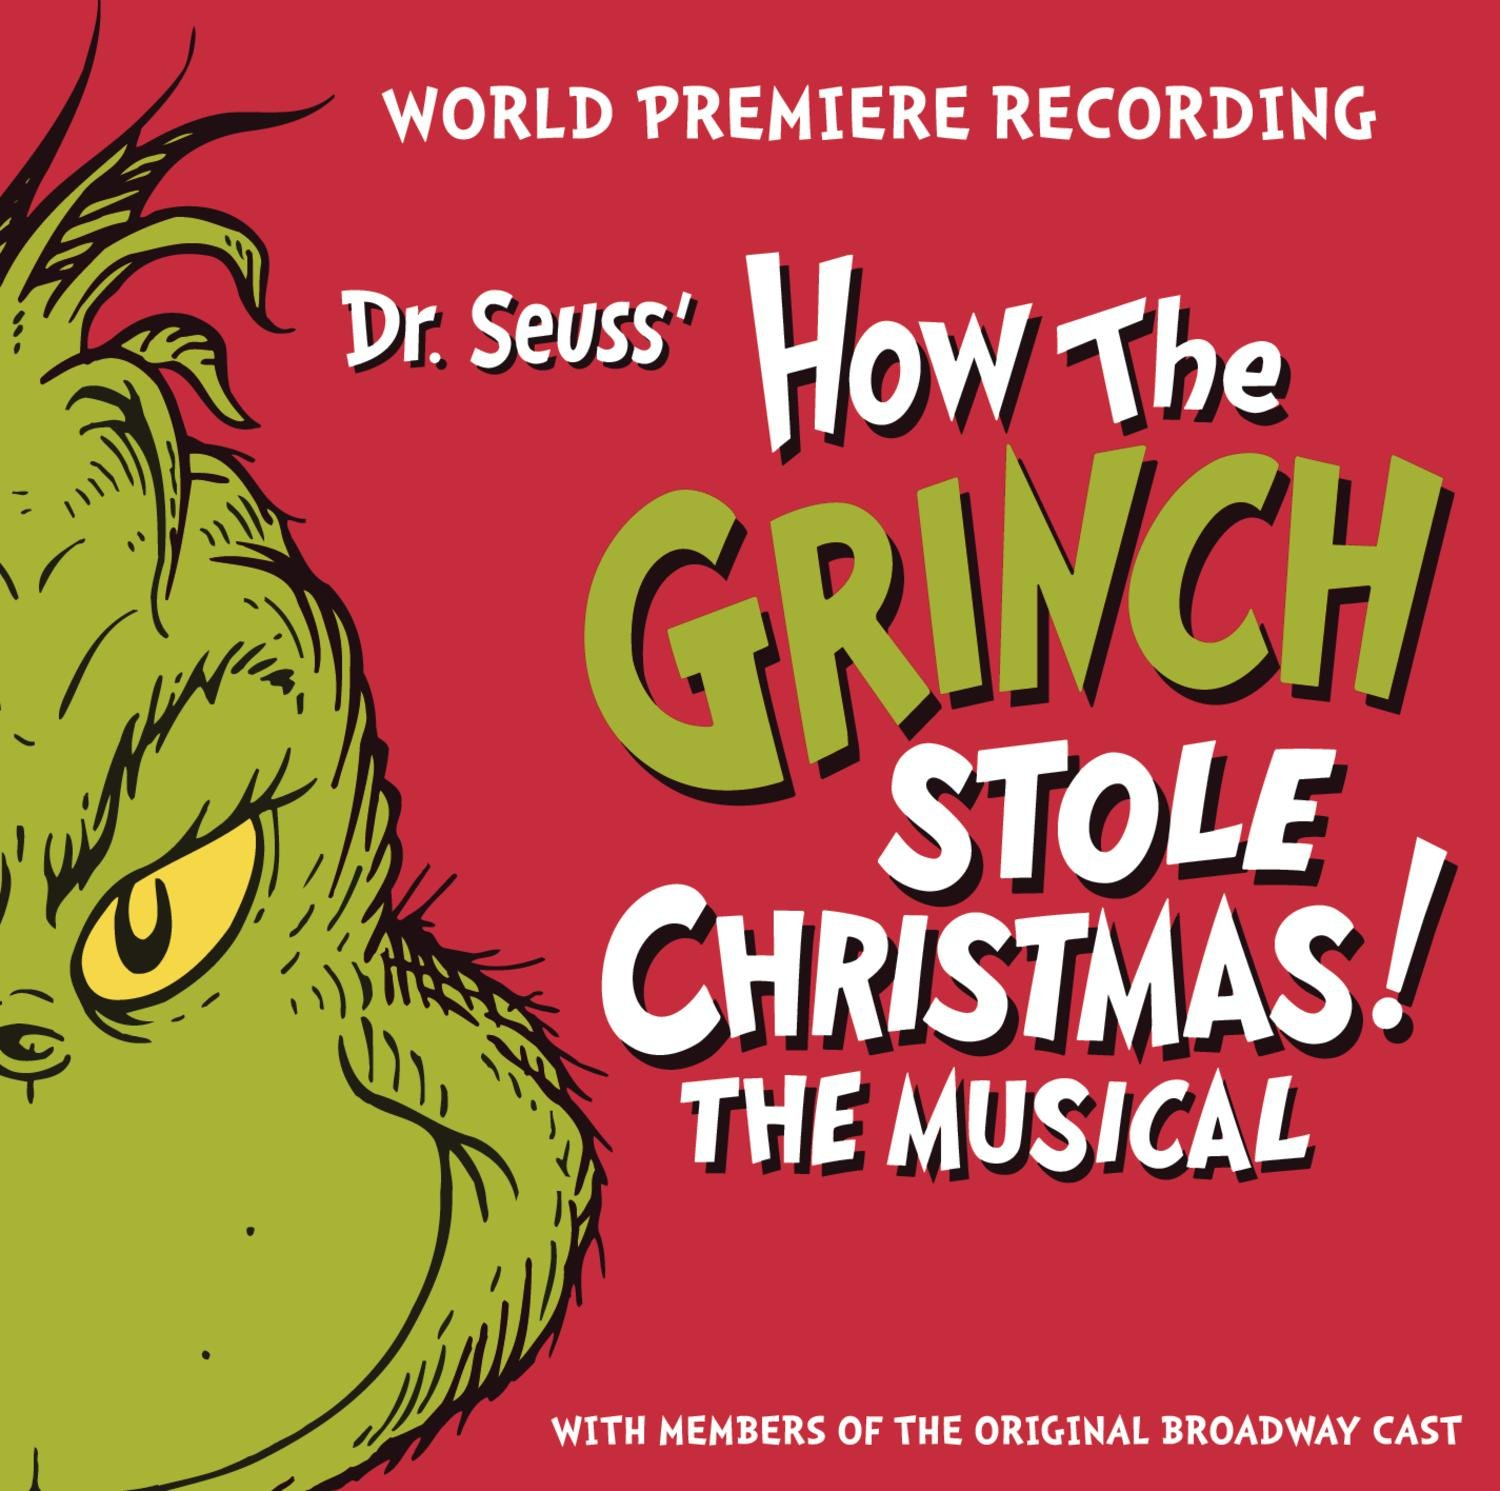 Dr. Seuss' The Grinch - Dr. Seuss' How The Grinch Stole Christmas! The Musical